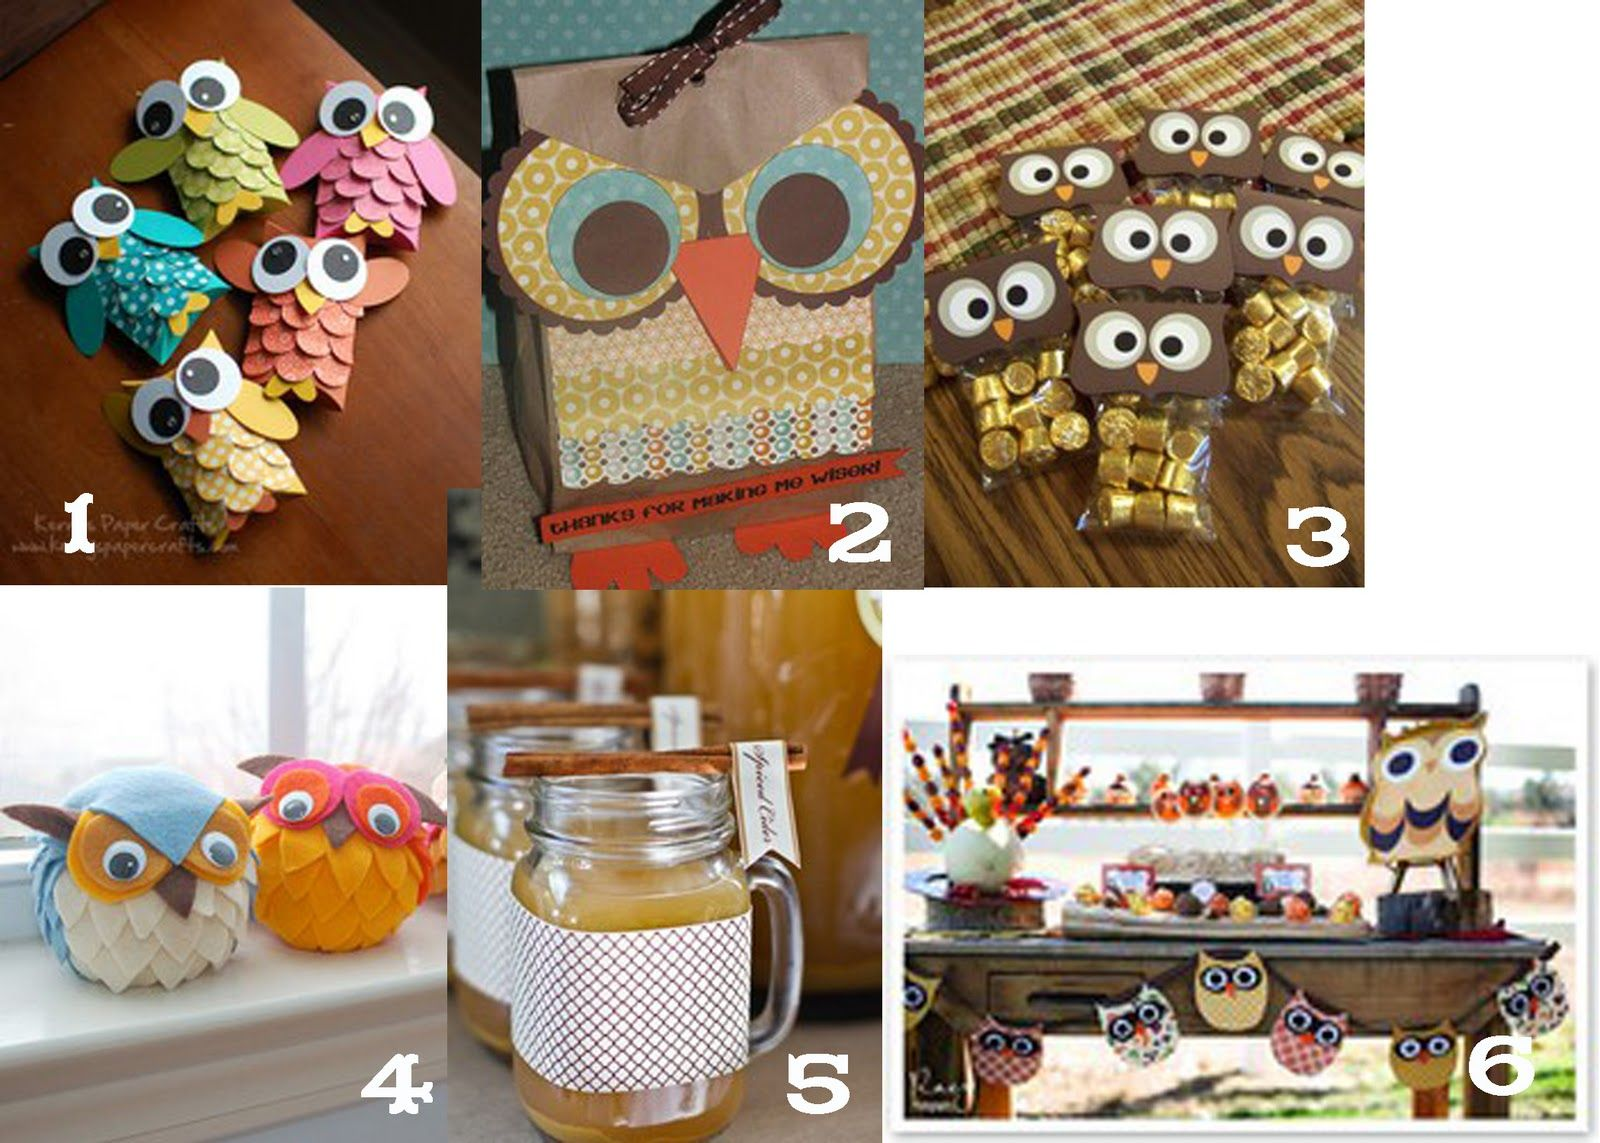 1. owl pillow boxes from Kerry's Craft Blog  2.Owl treat bags from Clean & Scentsible  3. Owl treat bags from Stamp'n Connection  4.Felt owls from Factory Direct Craft blog  5. Cider in jar glasses from Whipperberry  6. Cute owl banner from Ultimately Plush